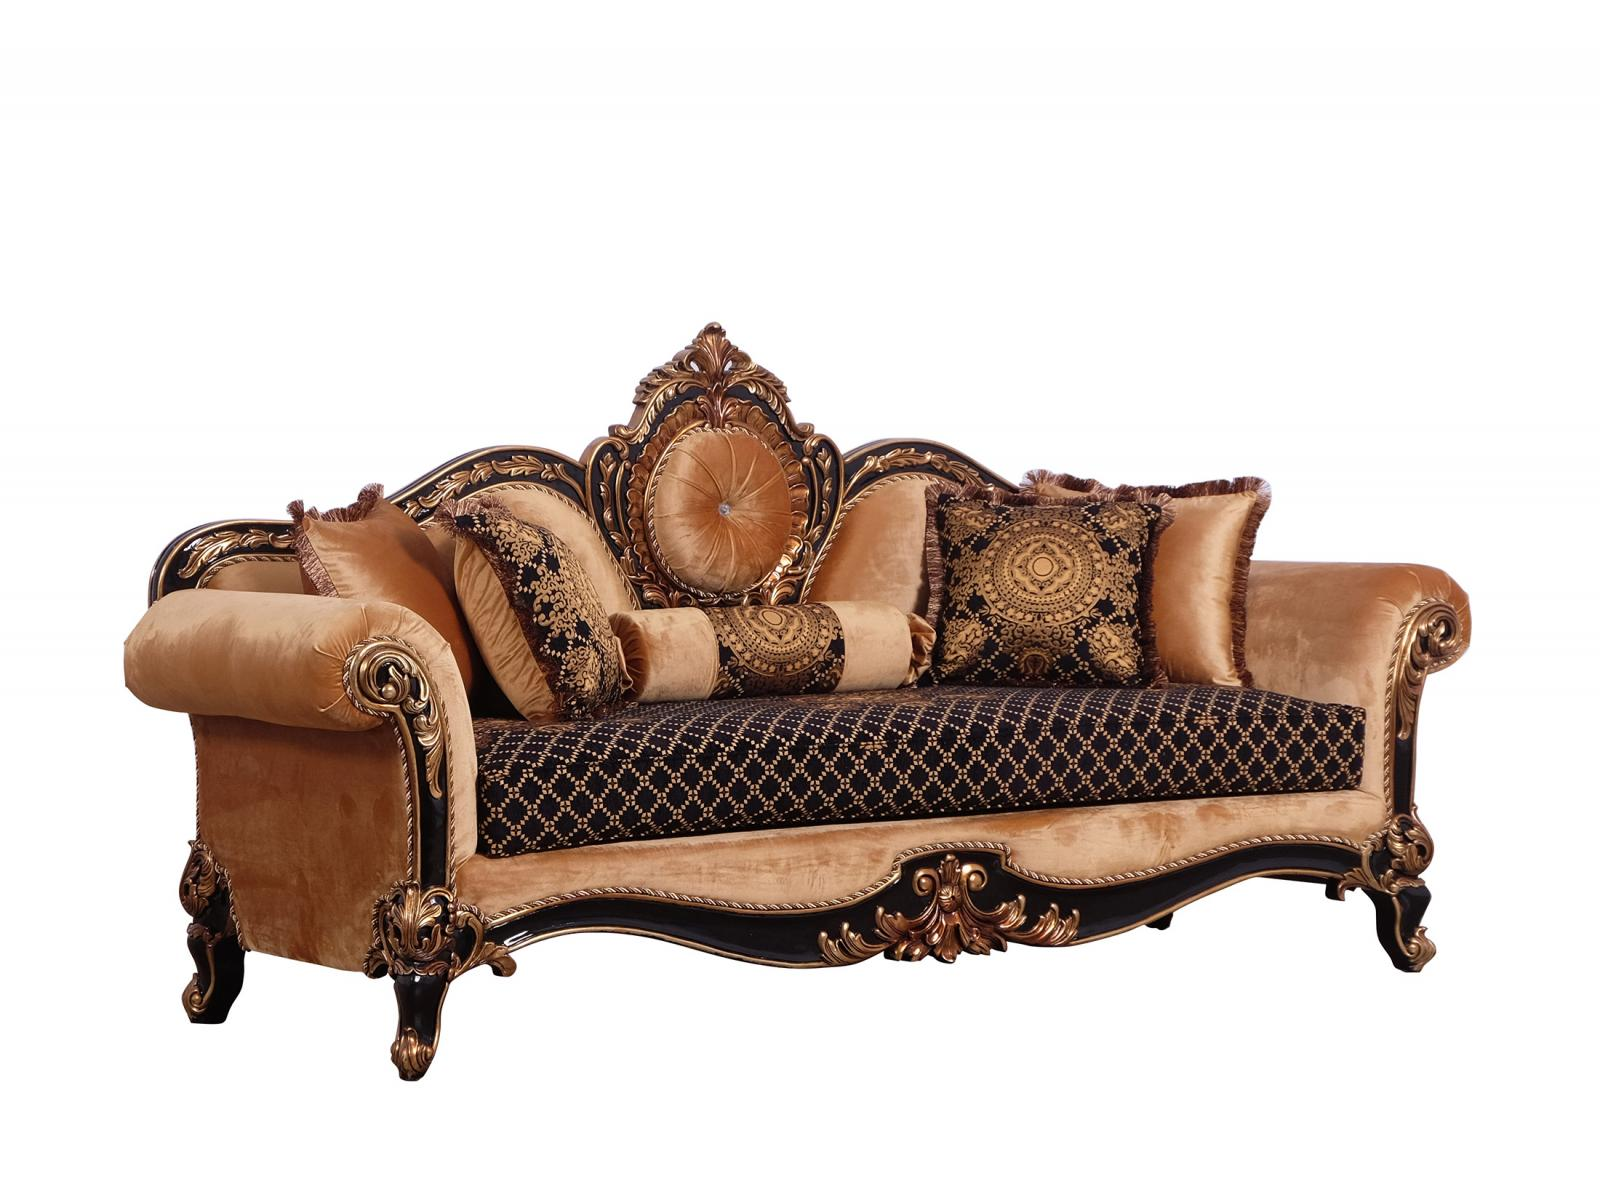 Classic  Traditional Gold  Silver  Antique   Black Wood  Solid Hardwood and Fabric Sofa EUROPEAN FURNITURE 41024-S